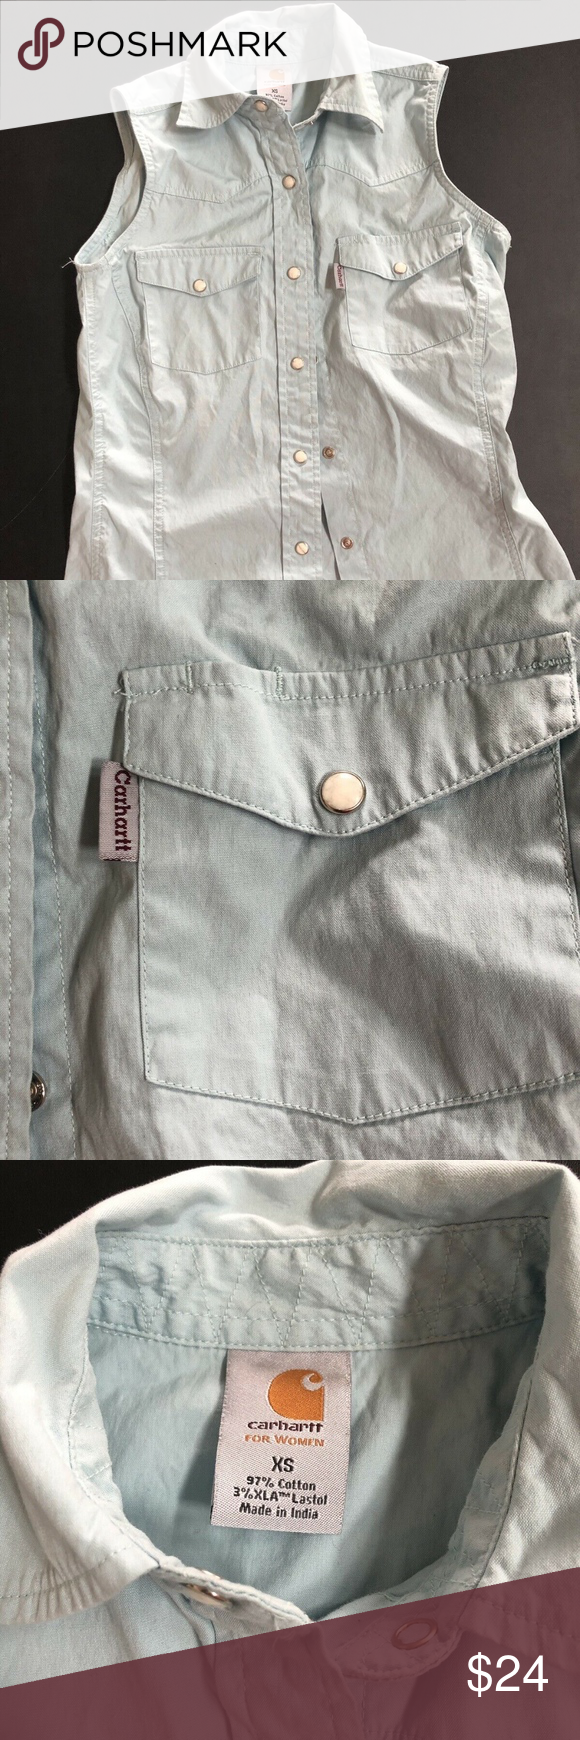 Carhartt Women's Baby Blue Button Down Vest Carhartt Women's Baby Blue Button Down Vest Size XS Sleeve Less Carhartt Tops #carharttwomen Carhartt Women's Baby Blue Button Down Vest Carhartt Women's Baby Blue Button Down Vest Size XS Sleeve Less Carhartt Tops #carharttwomen